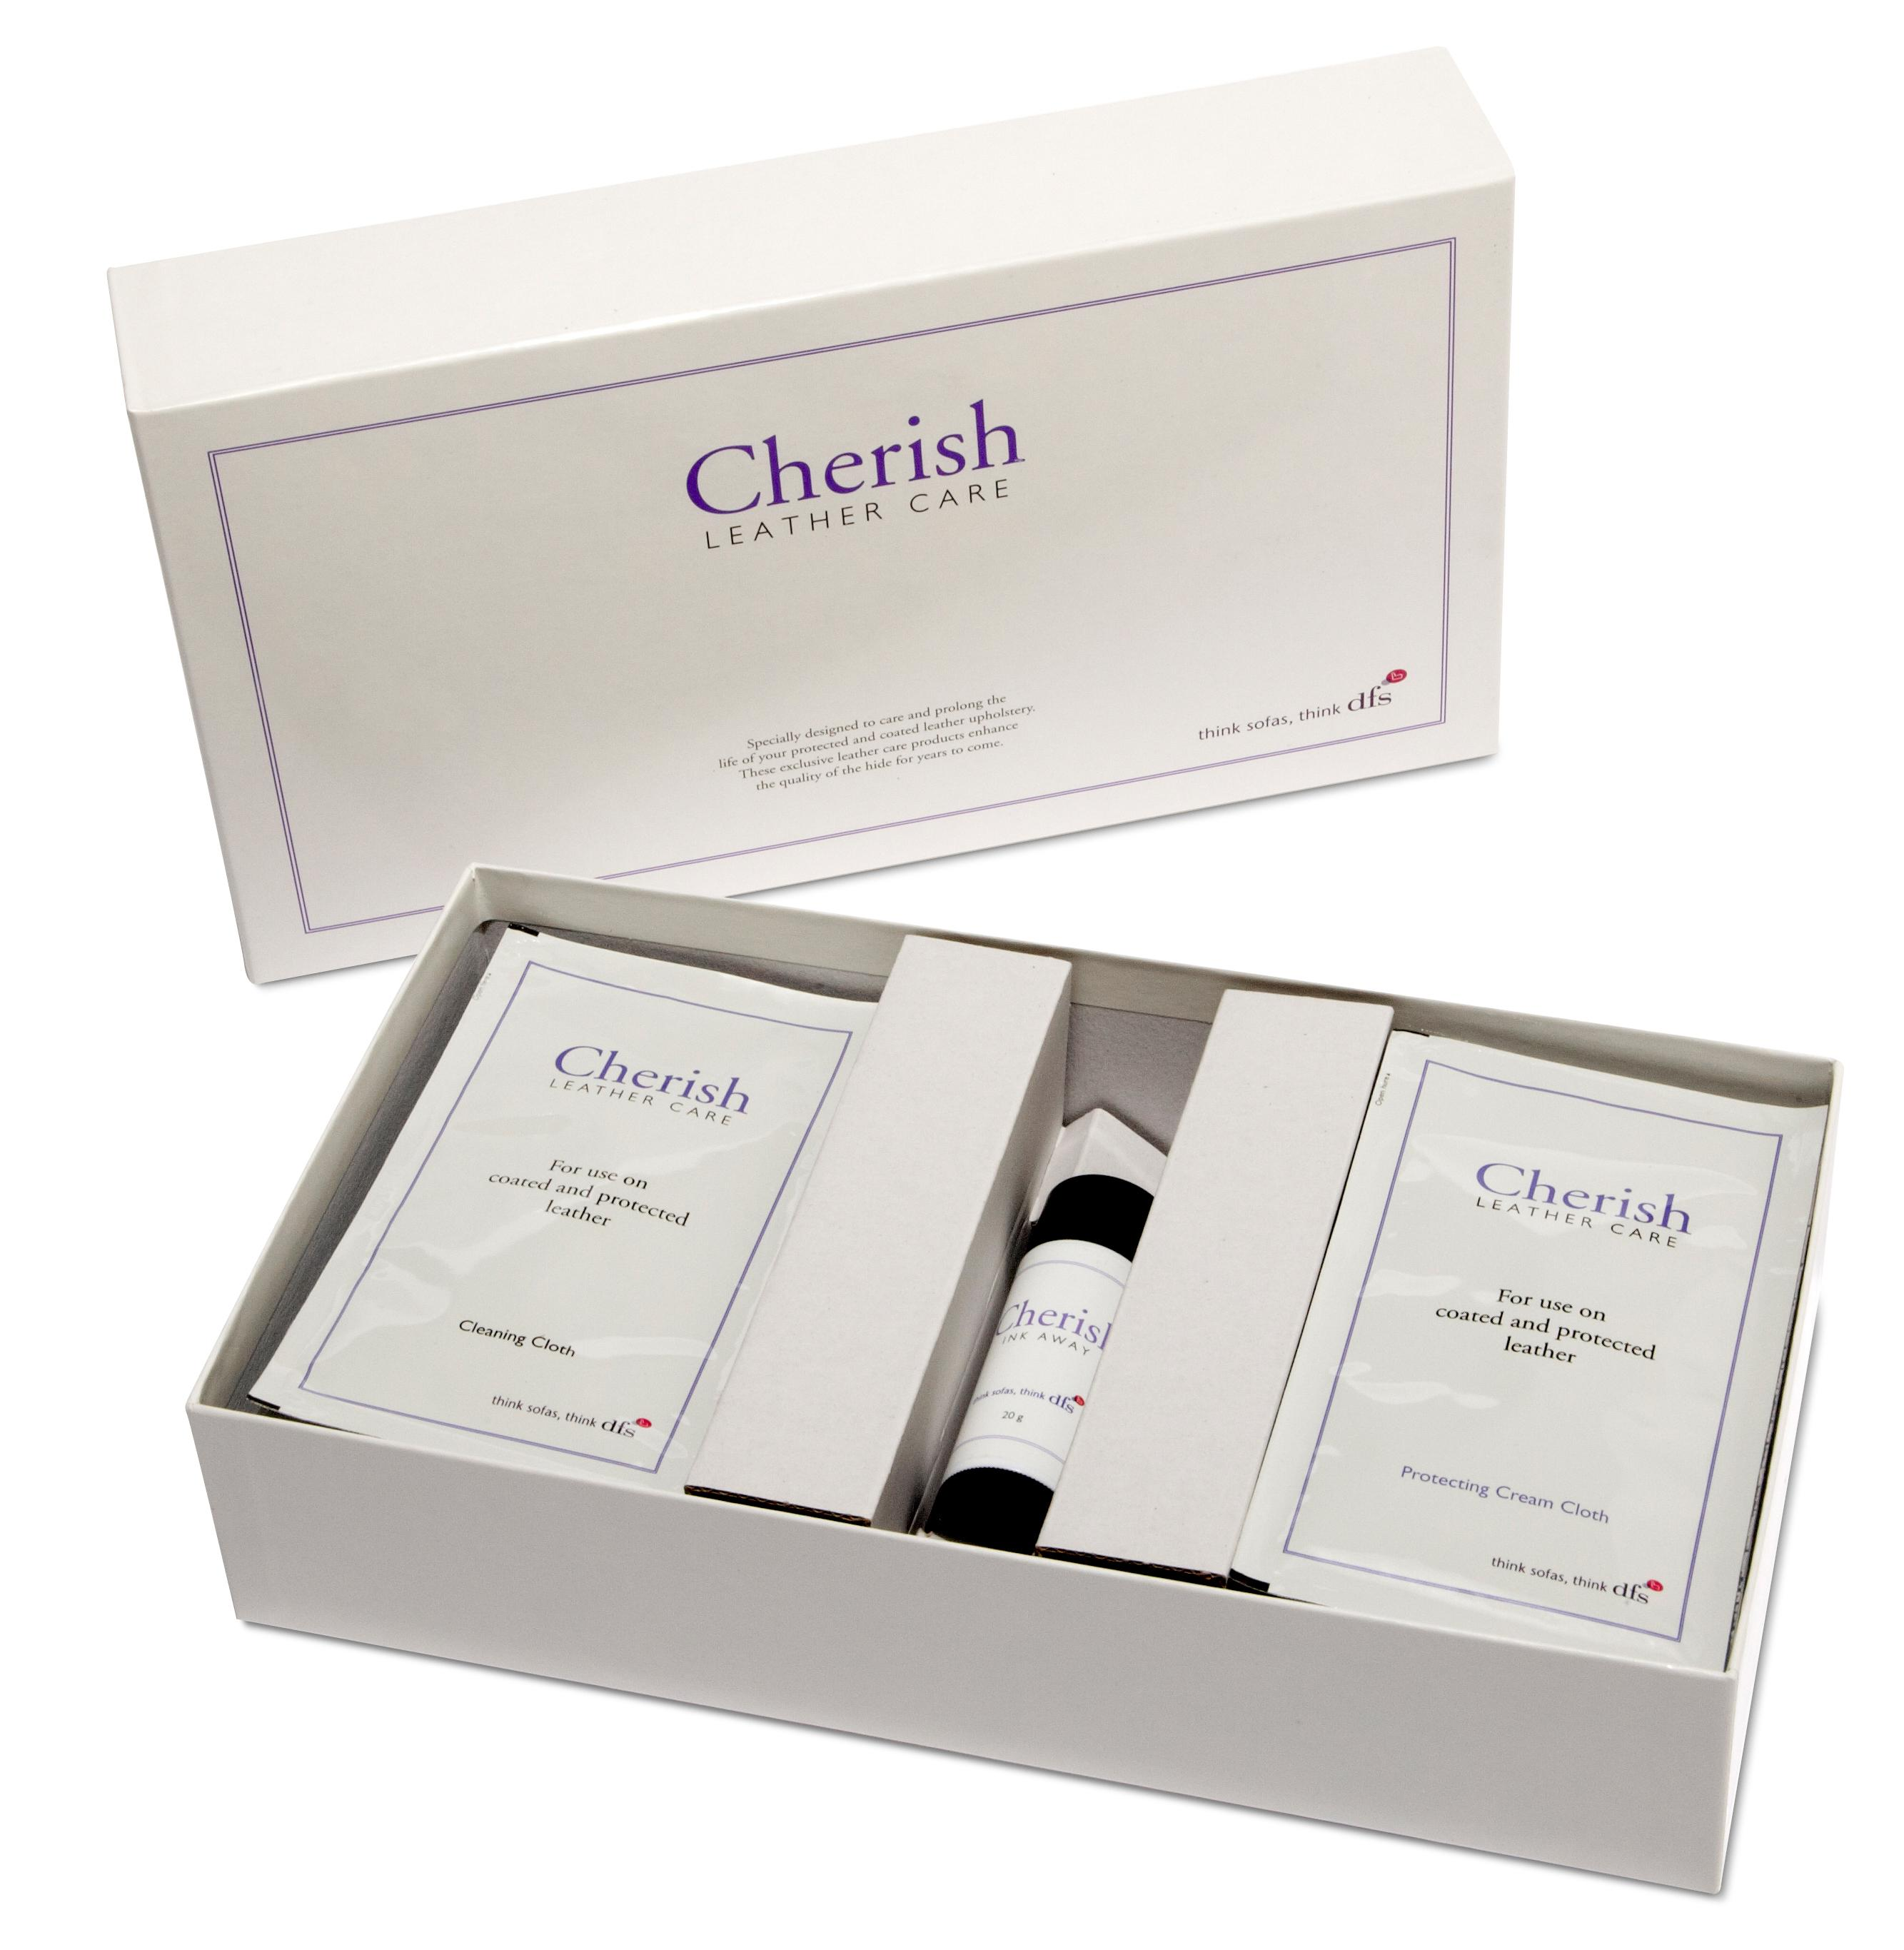 leather sofa cleaning kit sectional sofas nashville dfs official cherish cleaner care with